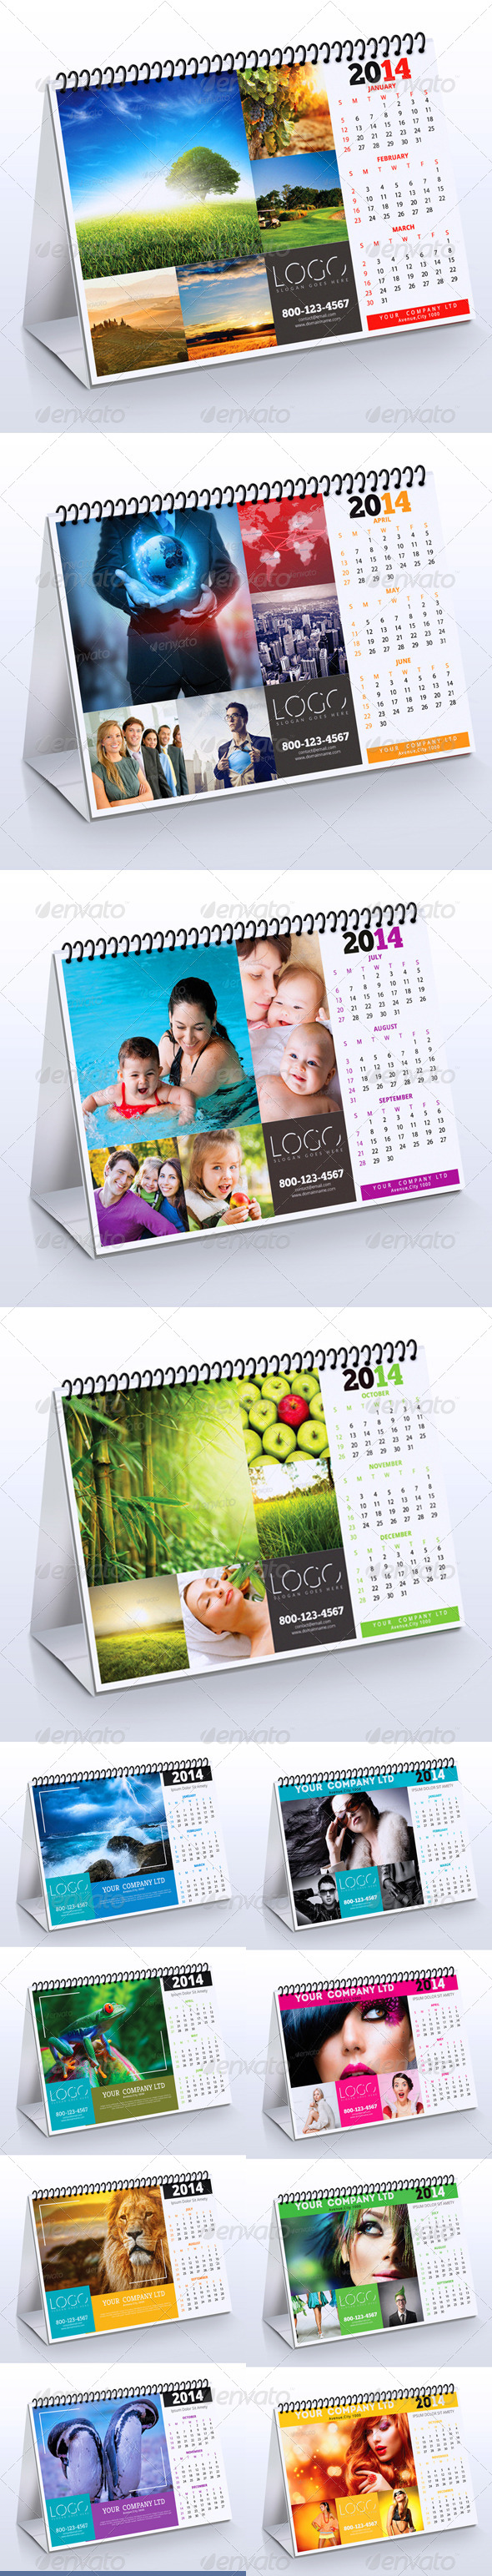 GraphicRiver 2014 Desk Calendar Bundle 6317200